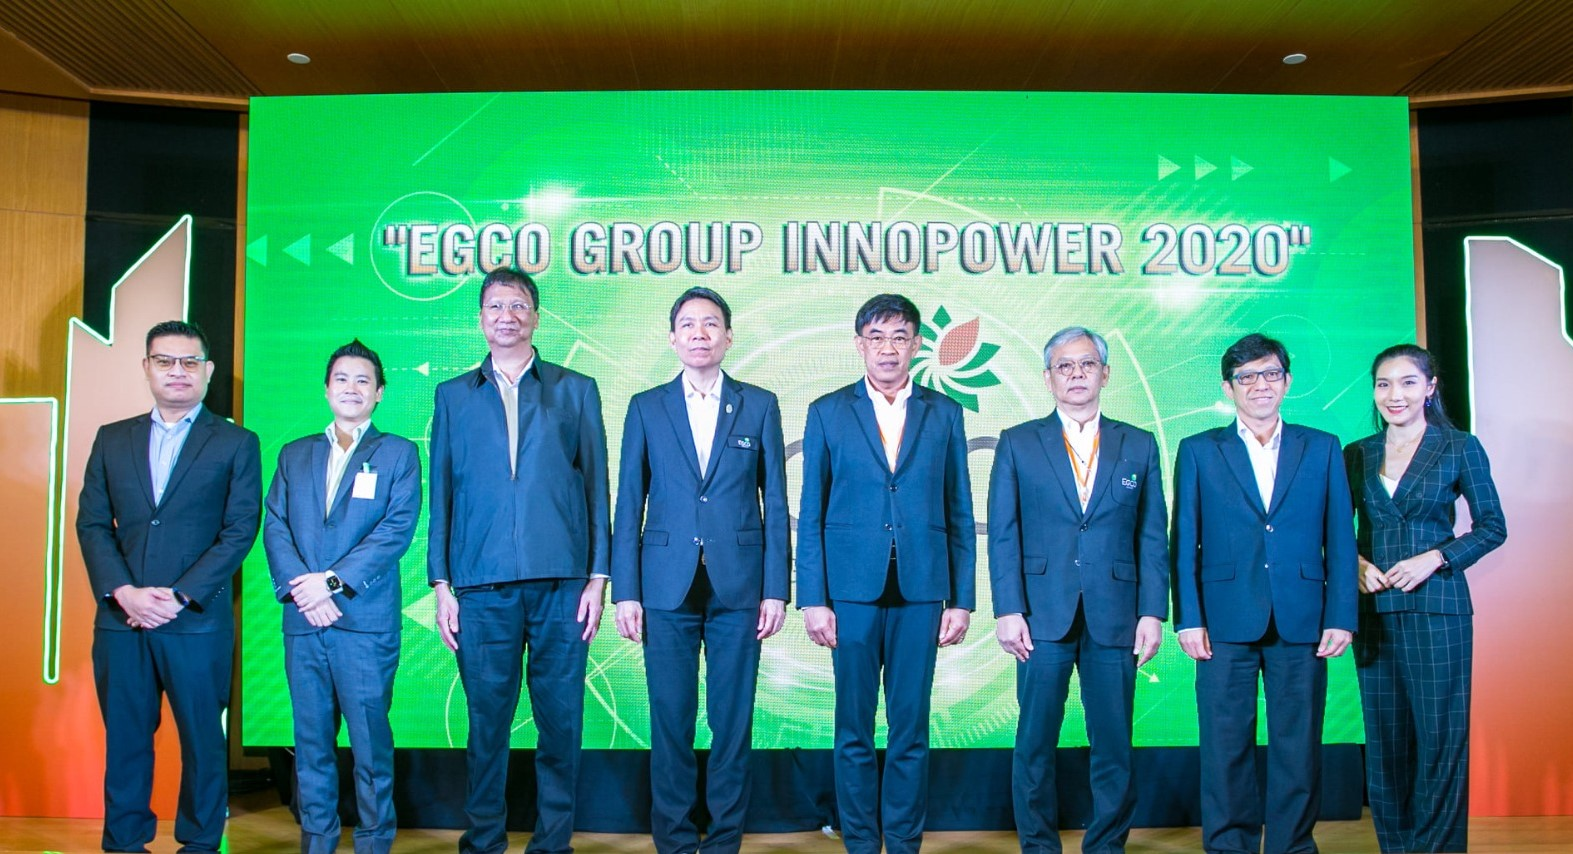 EGCO Group InnoPower 2020